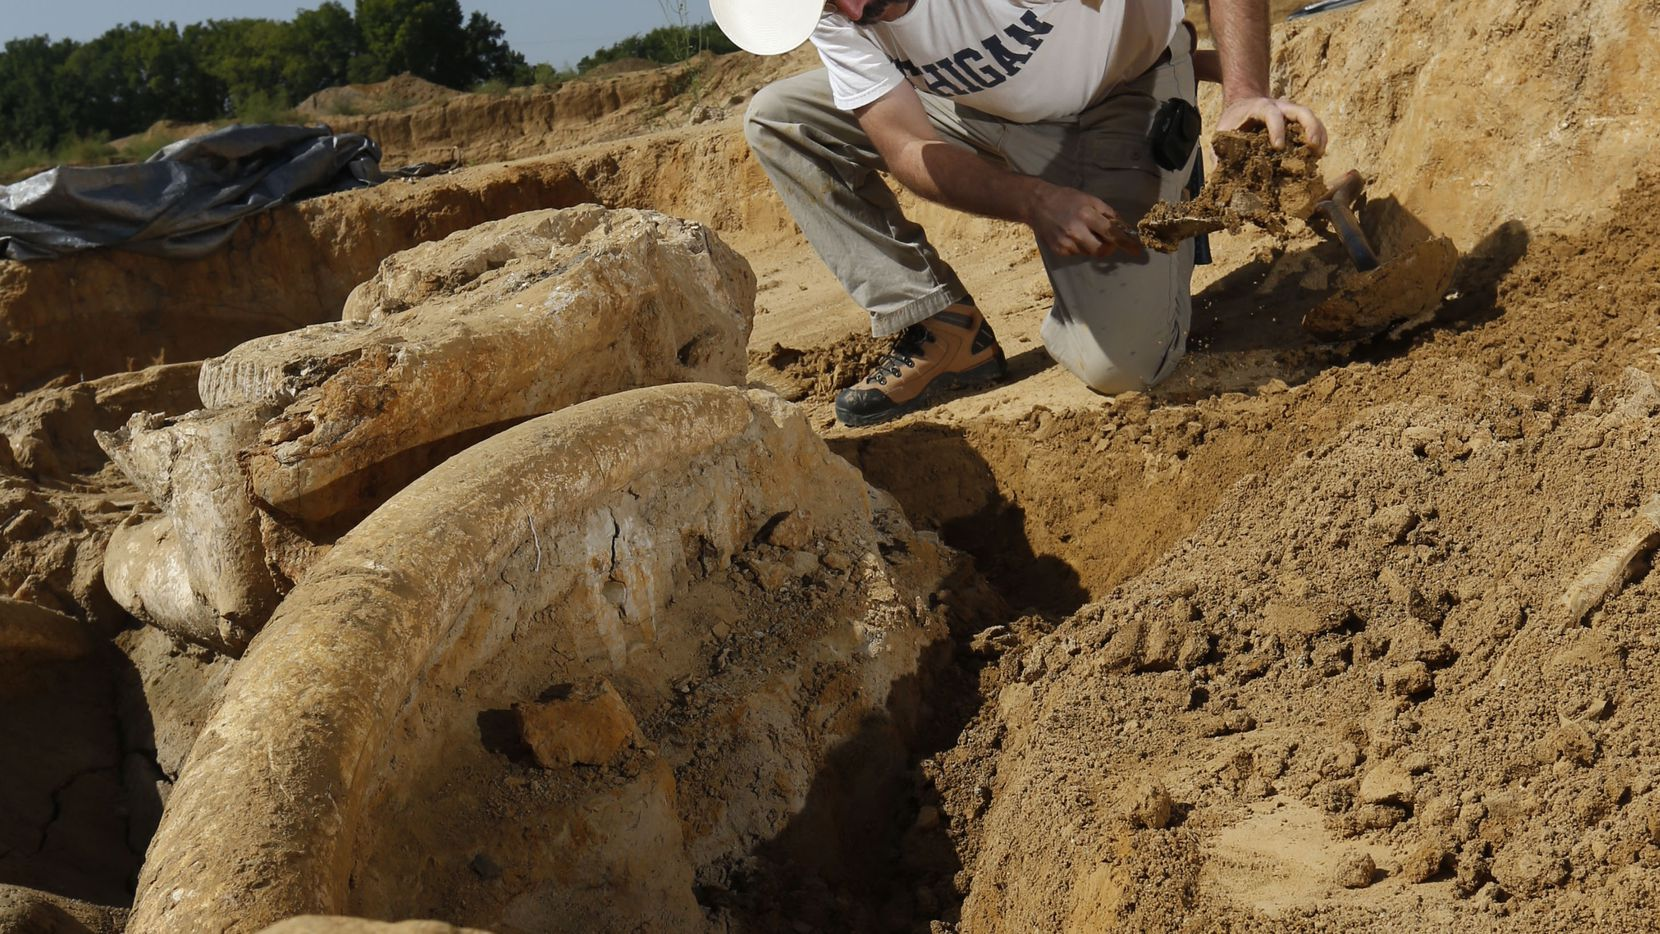 Ron S. Tykoski, a fossil preparator for the Perot Museum of Nature and Science, excavates a preserved mammoth skeleton from an Ellis County gravel pit. The pit's owner, Wayne McEwen, is donating the skeleton to the museum.